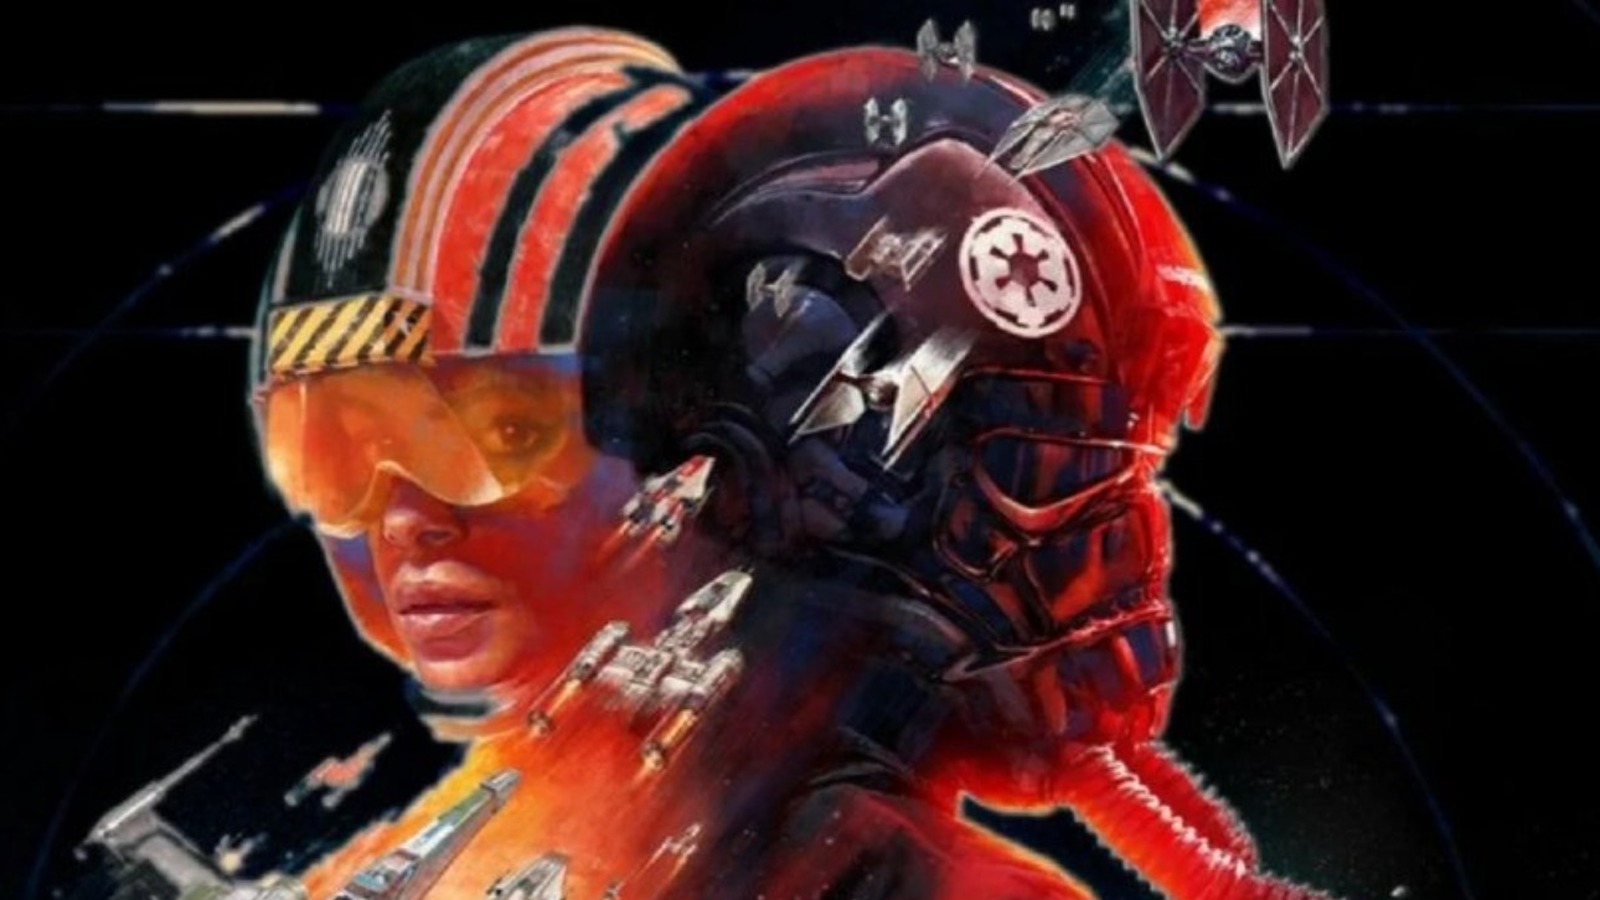 Star Wars characters that need their own video games